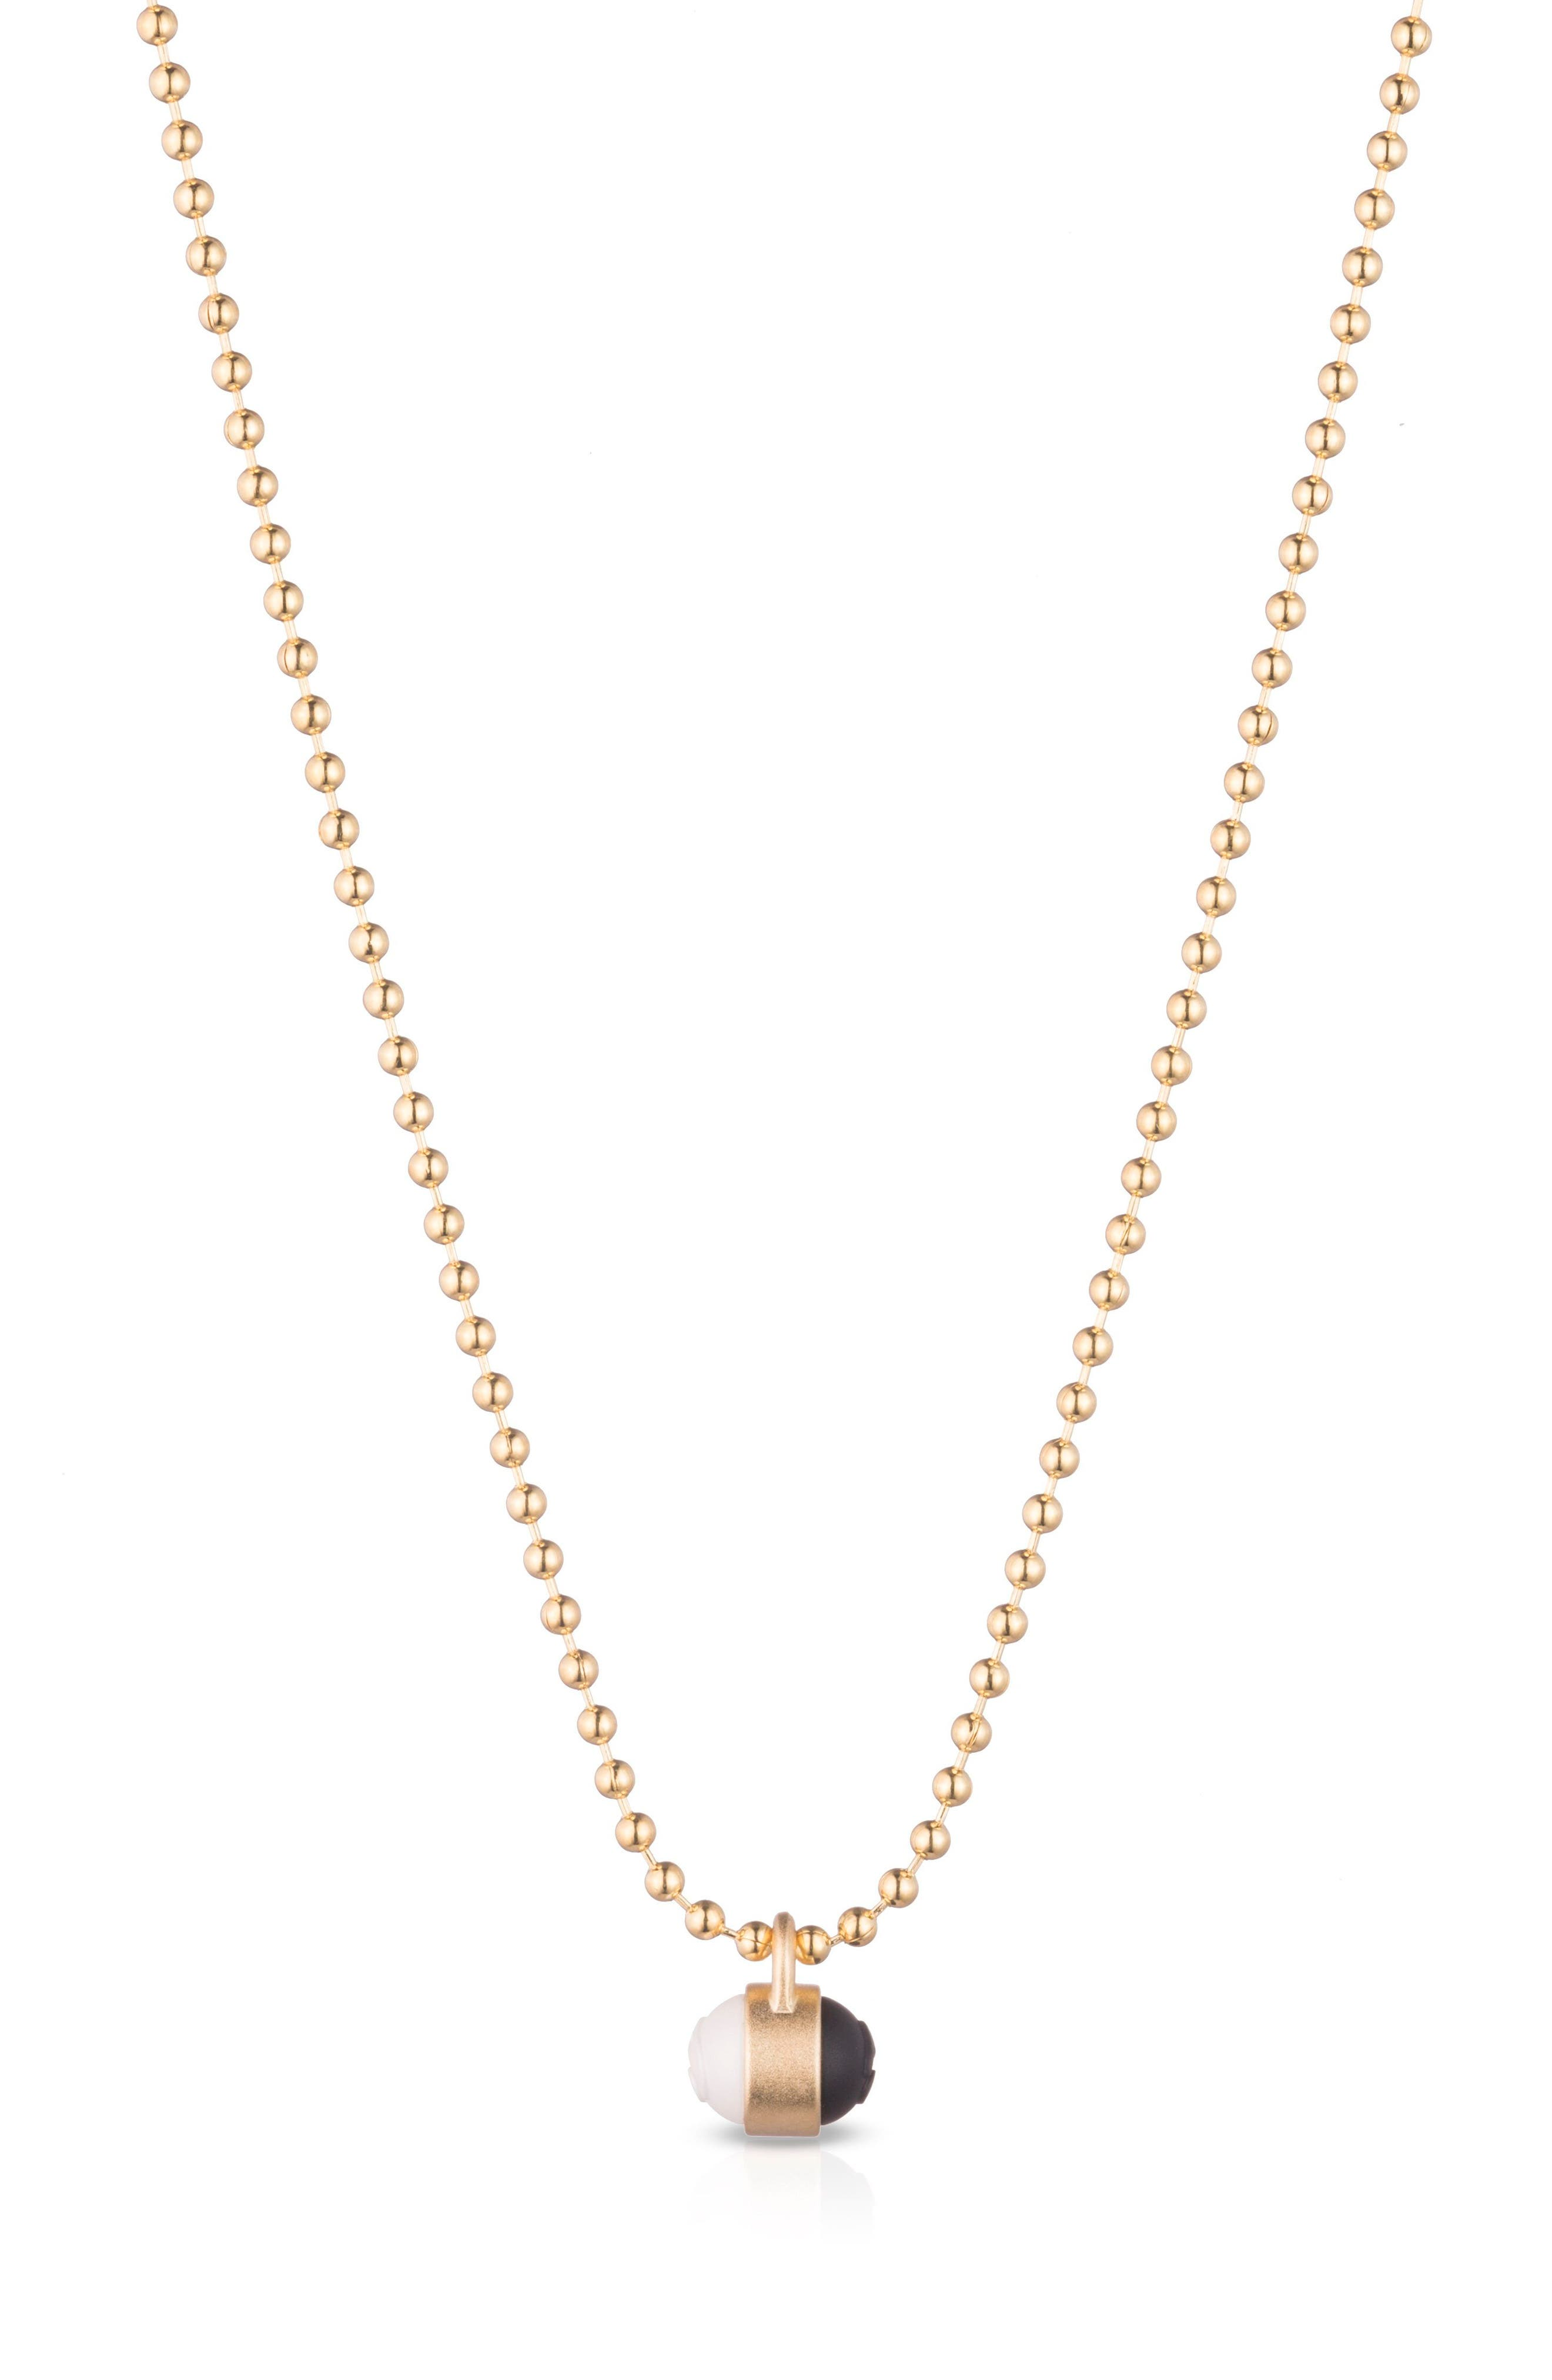 Pendant Ball Chain Necklace,                         Main,                         color, Gold